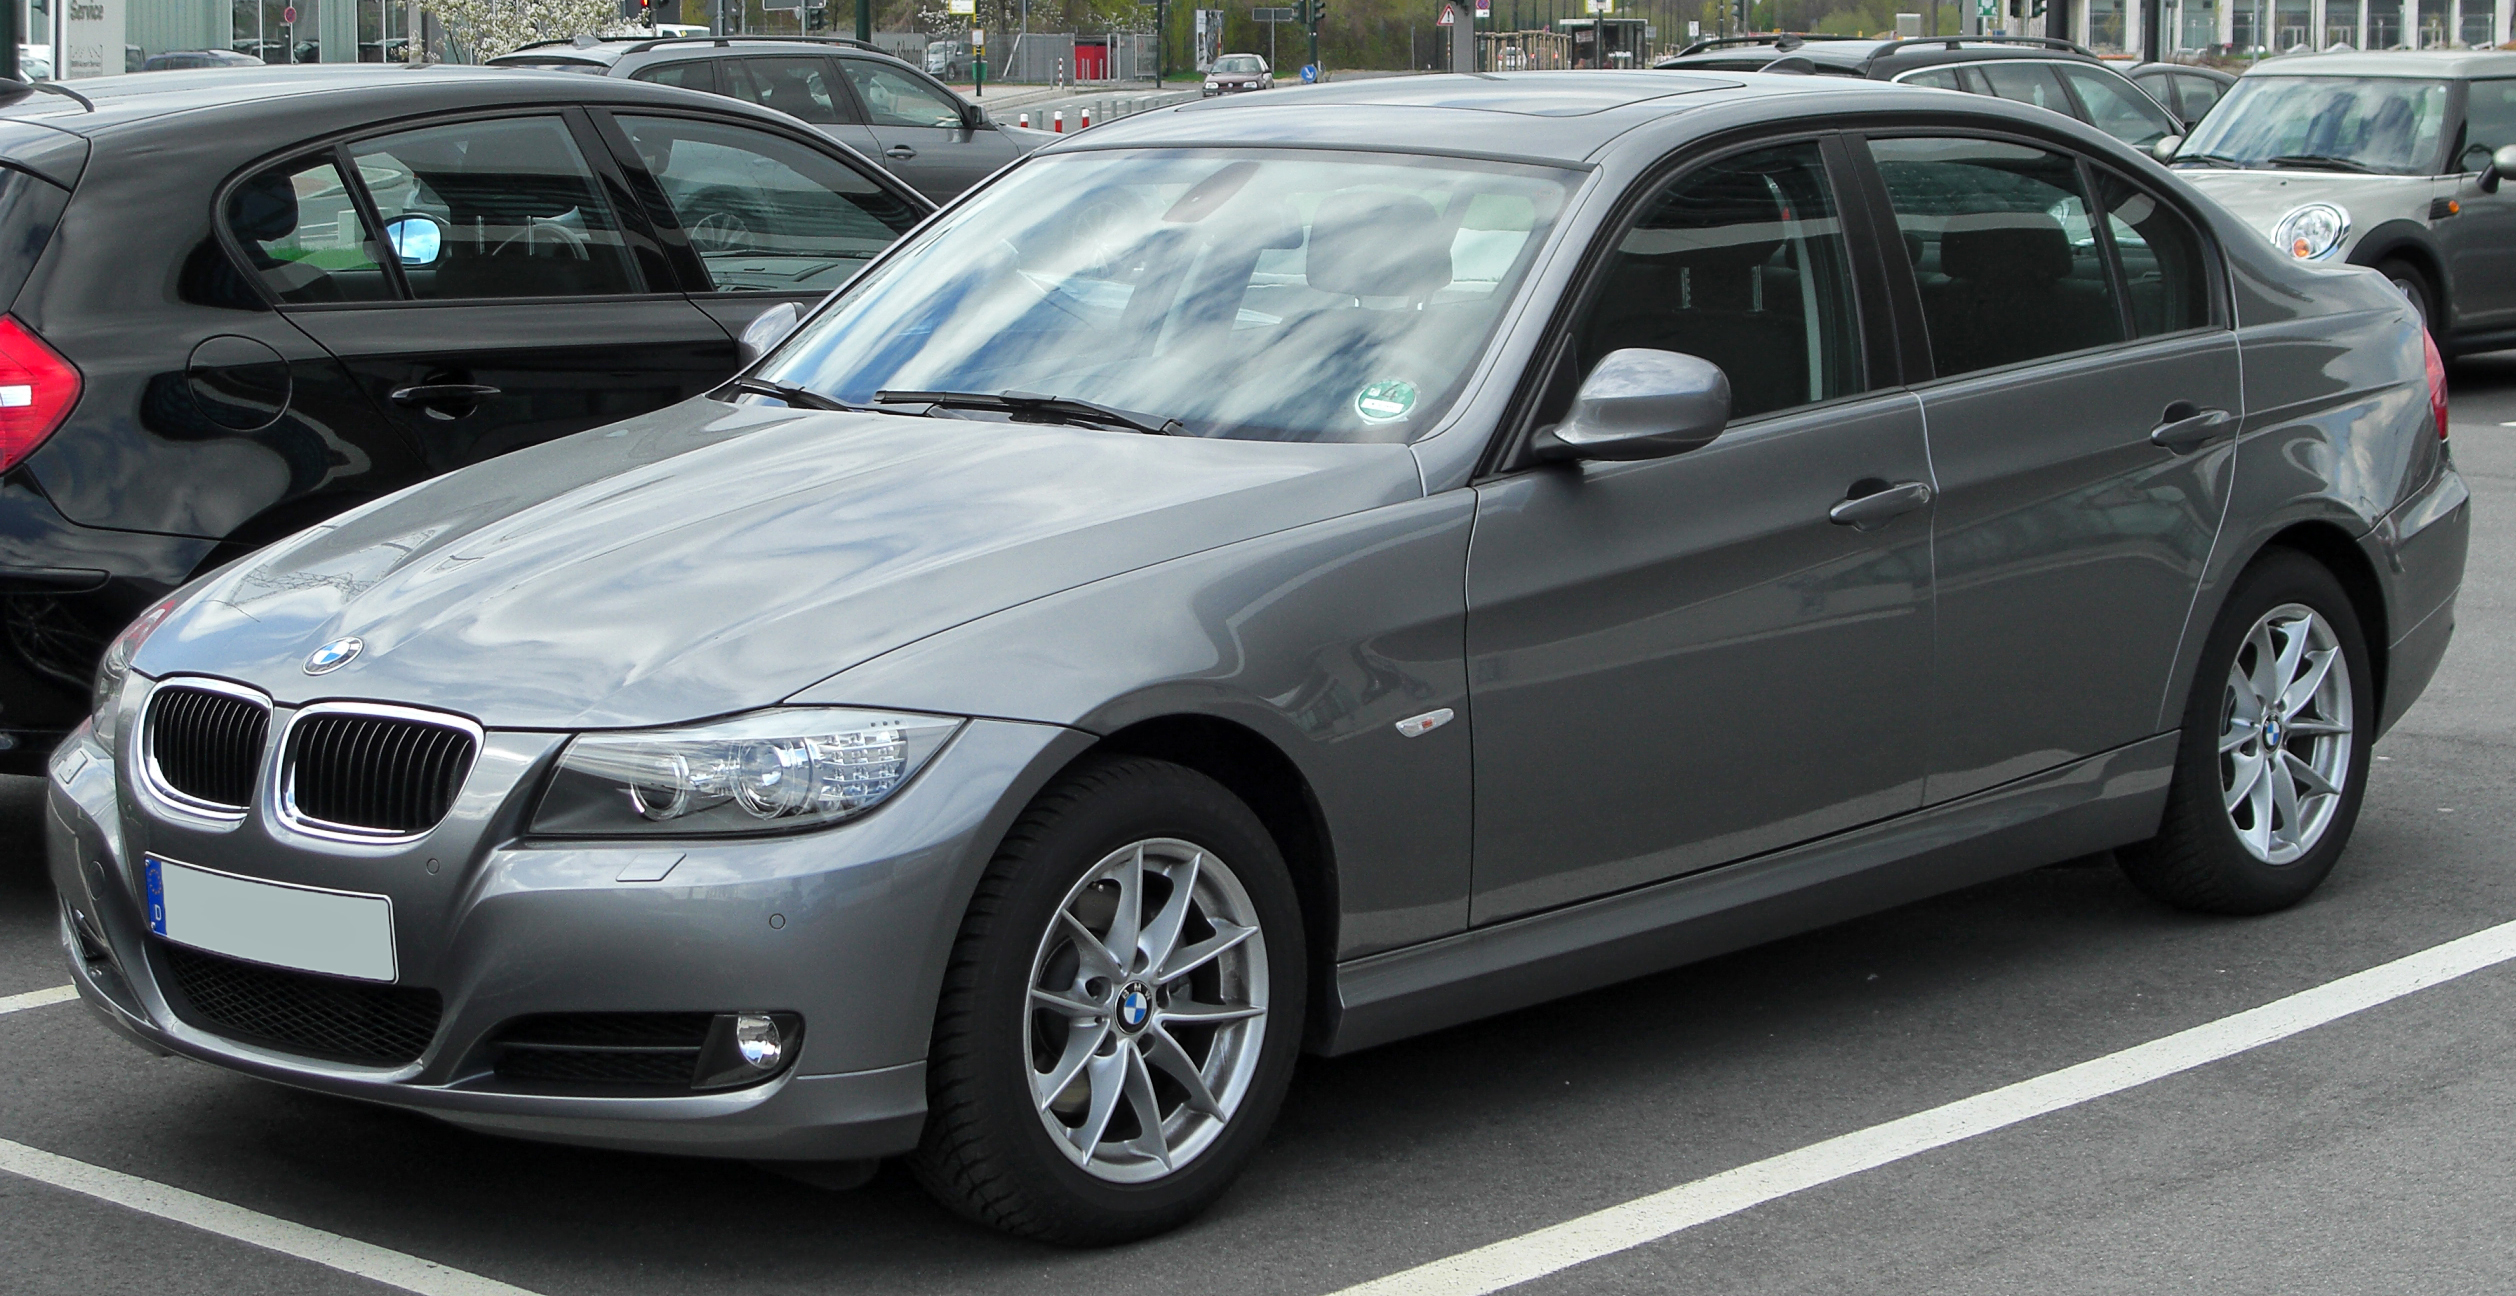 File:BMW 320i (E90) Facelift front 20100410.jpg